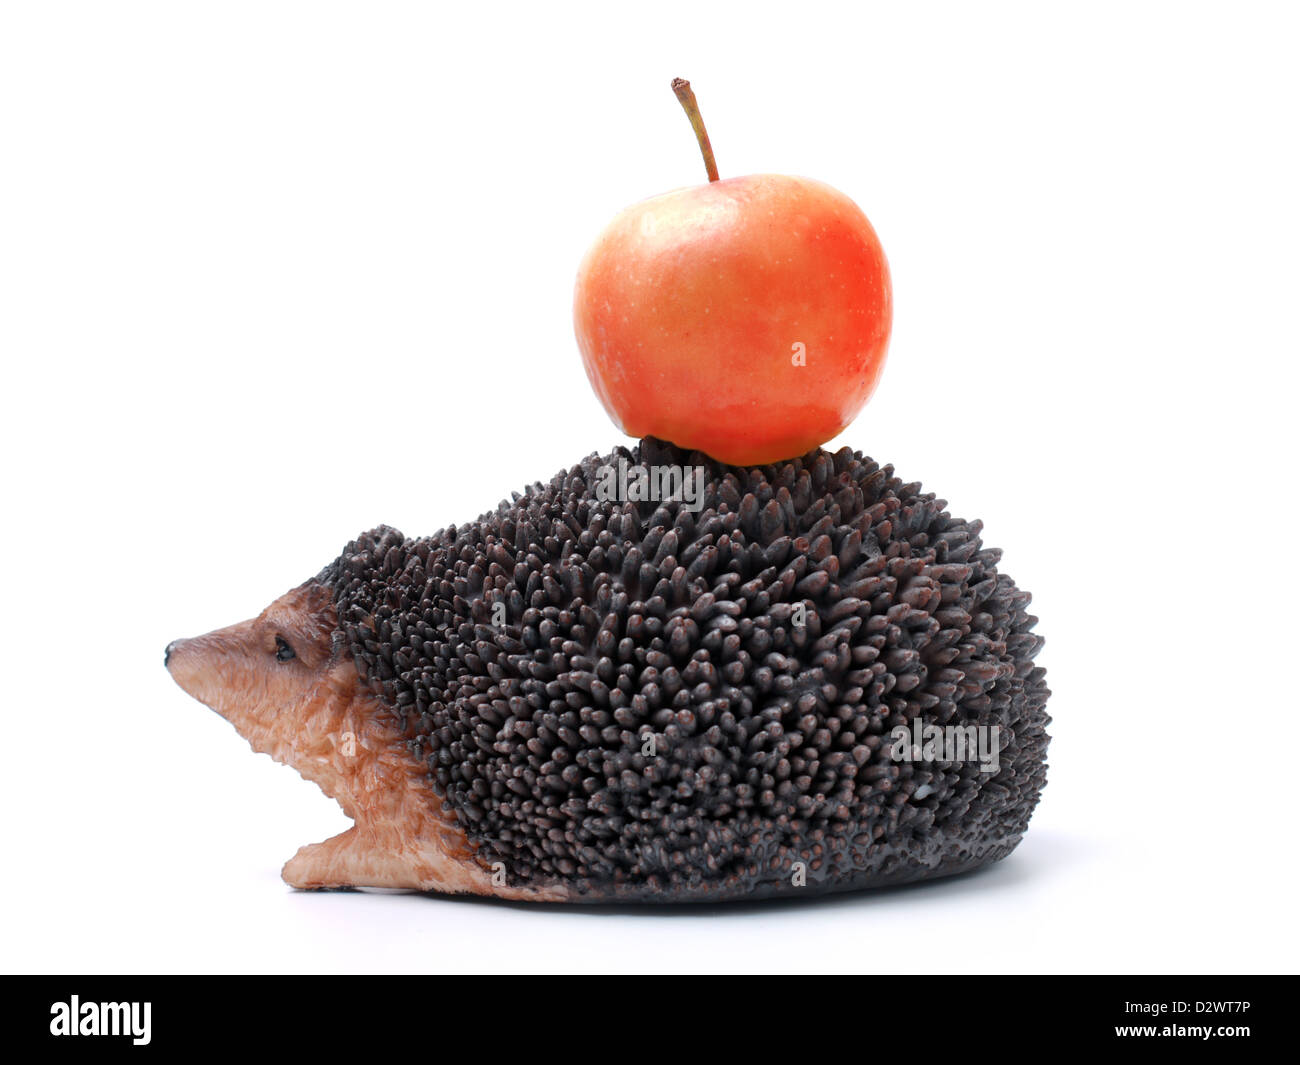 Hedgehog carrying red apple on its back over white background - Stock Image